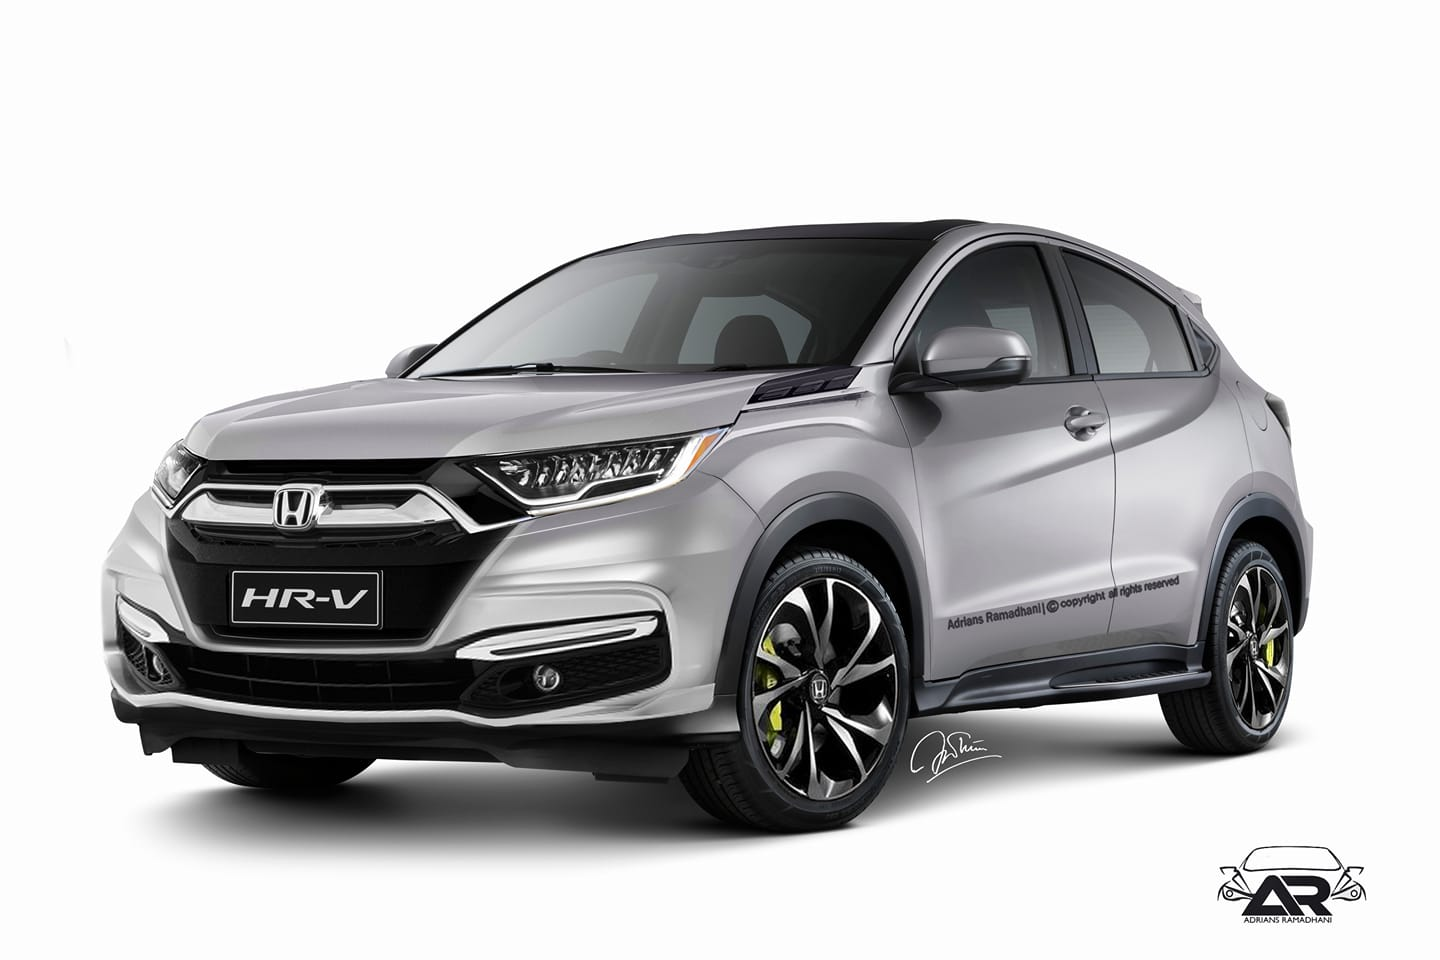 2017 Civic Led Headlights >> 2018 Honda HR-V (facelift) - Rendering